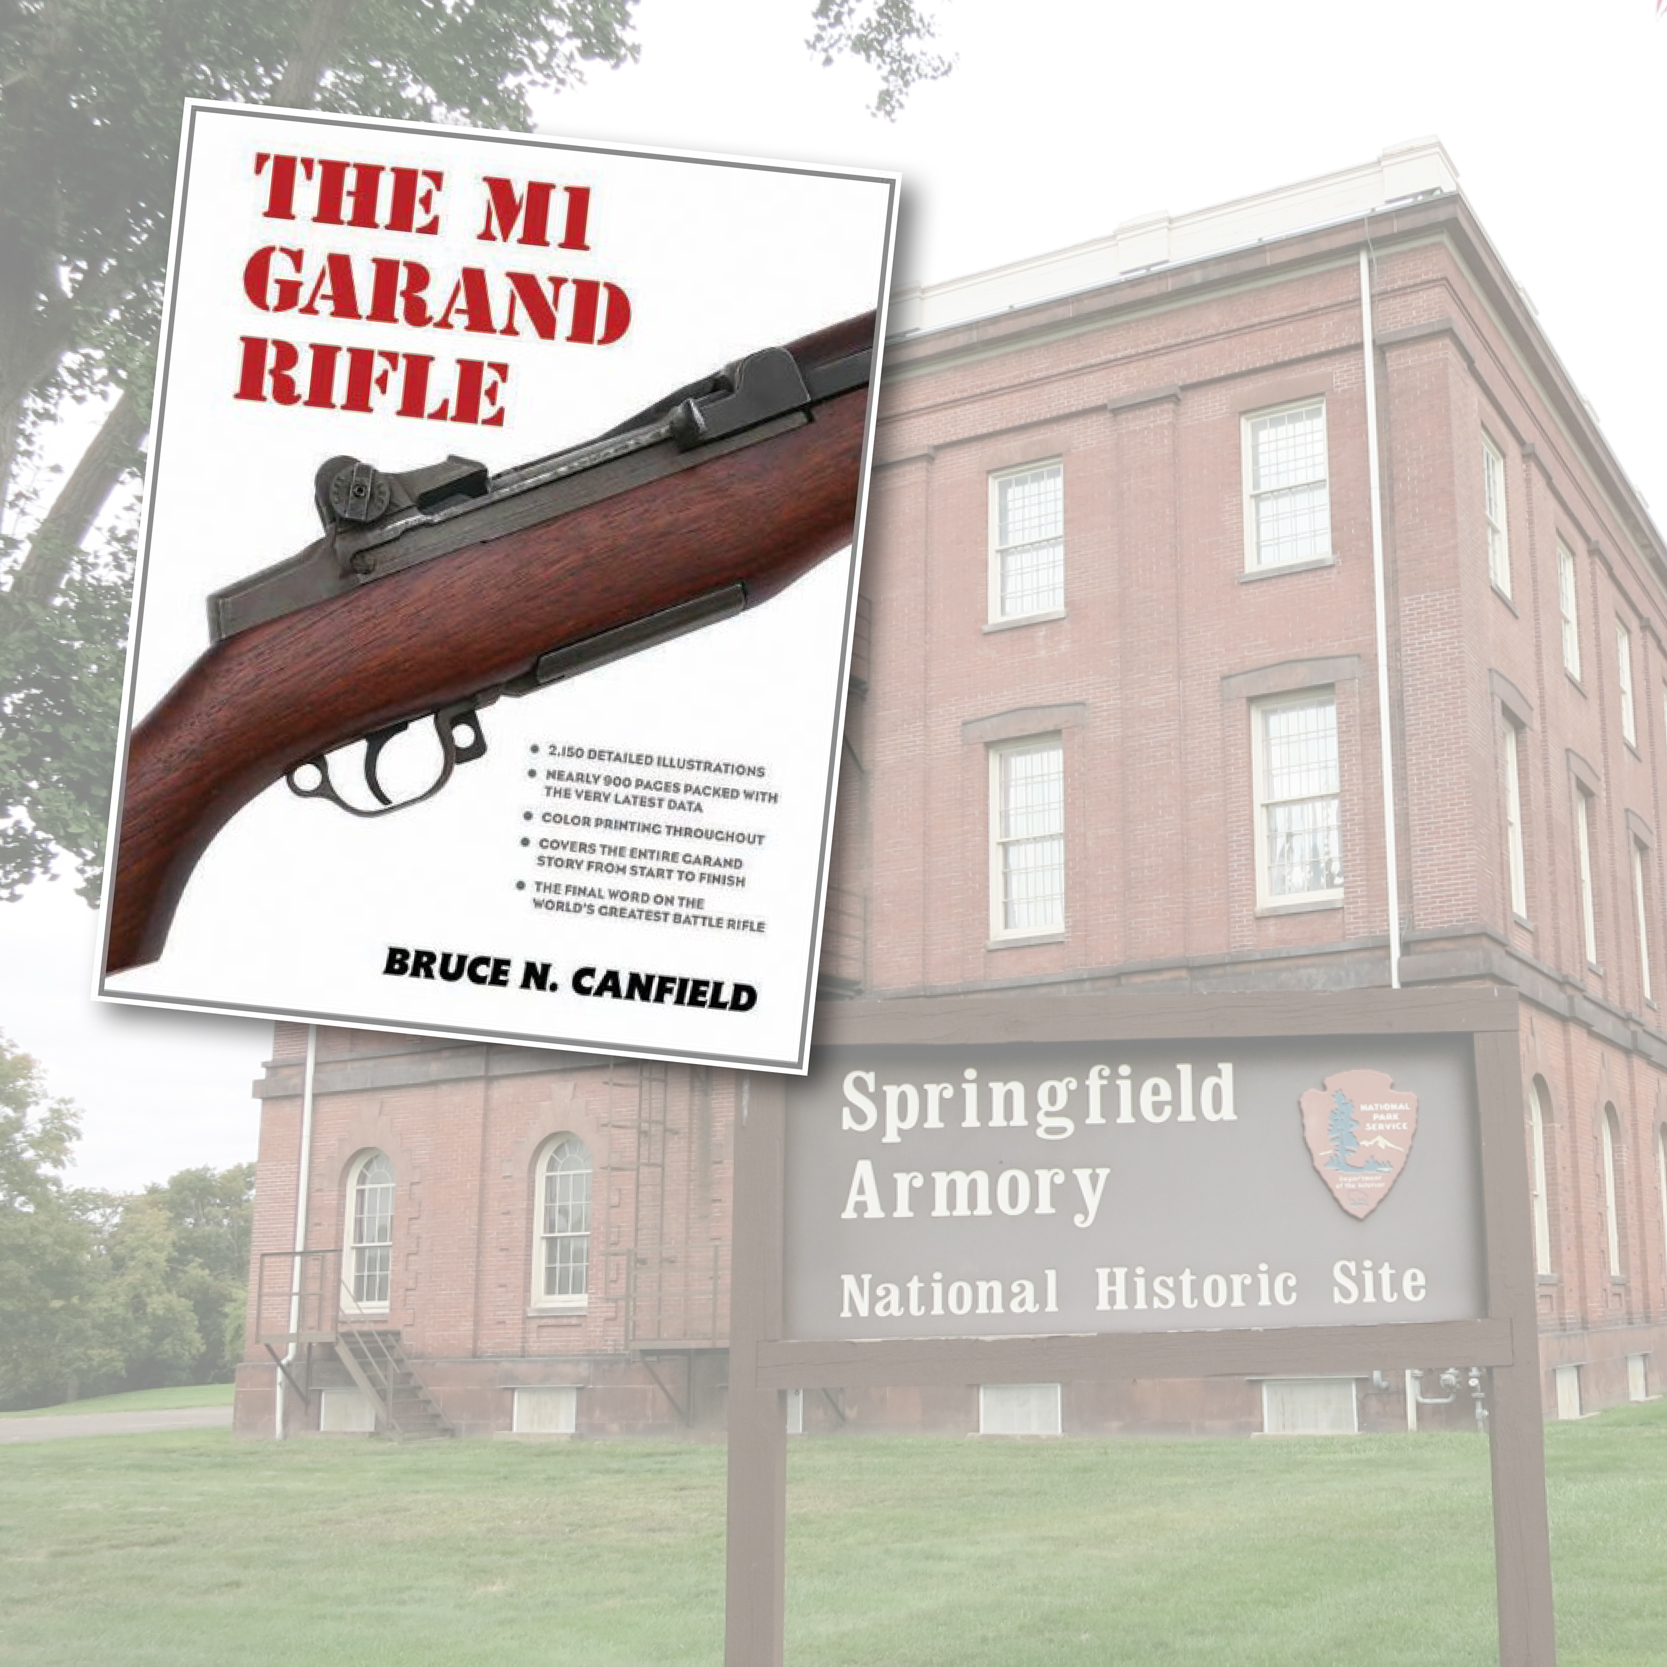 M1-garand-rifle-80th-anniversary